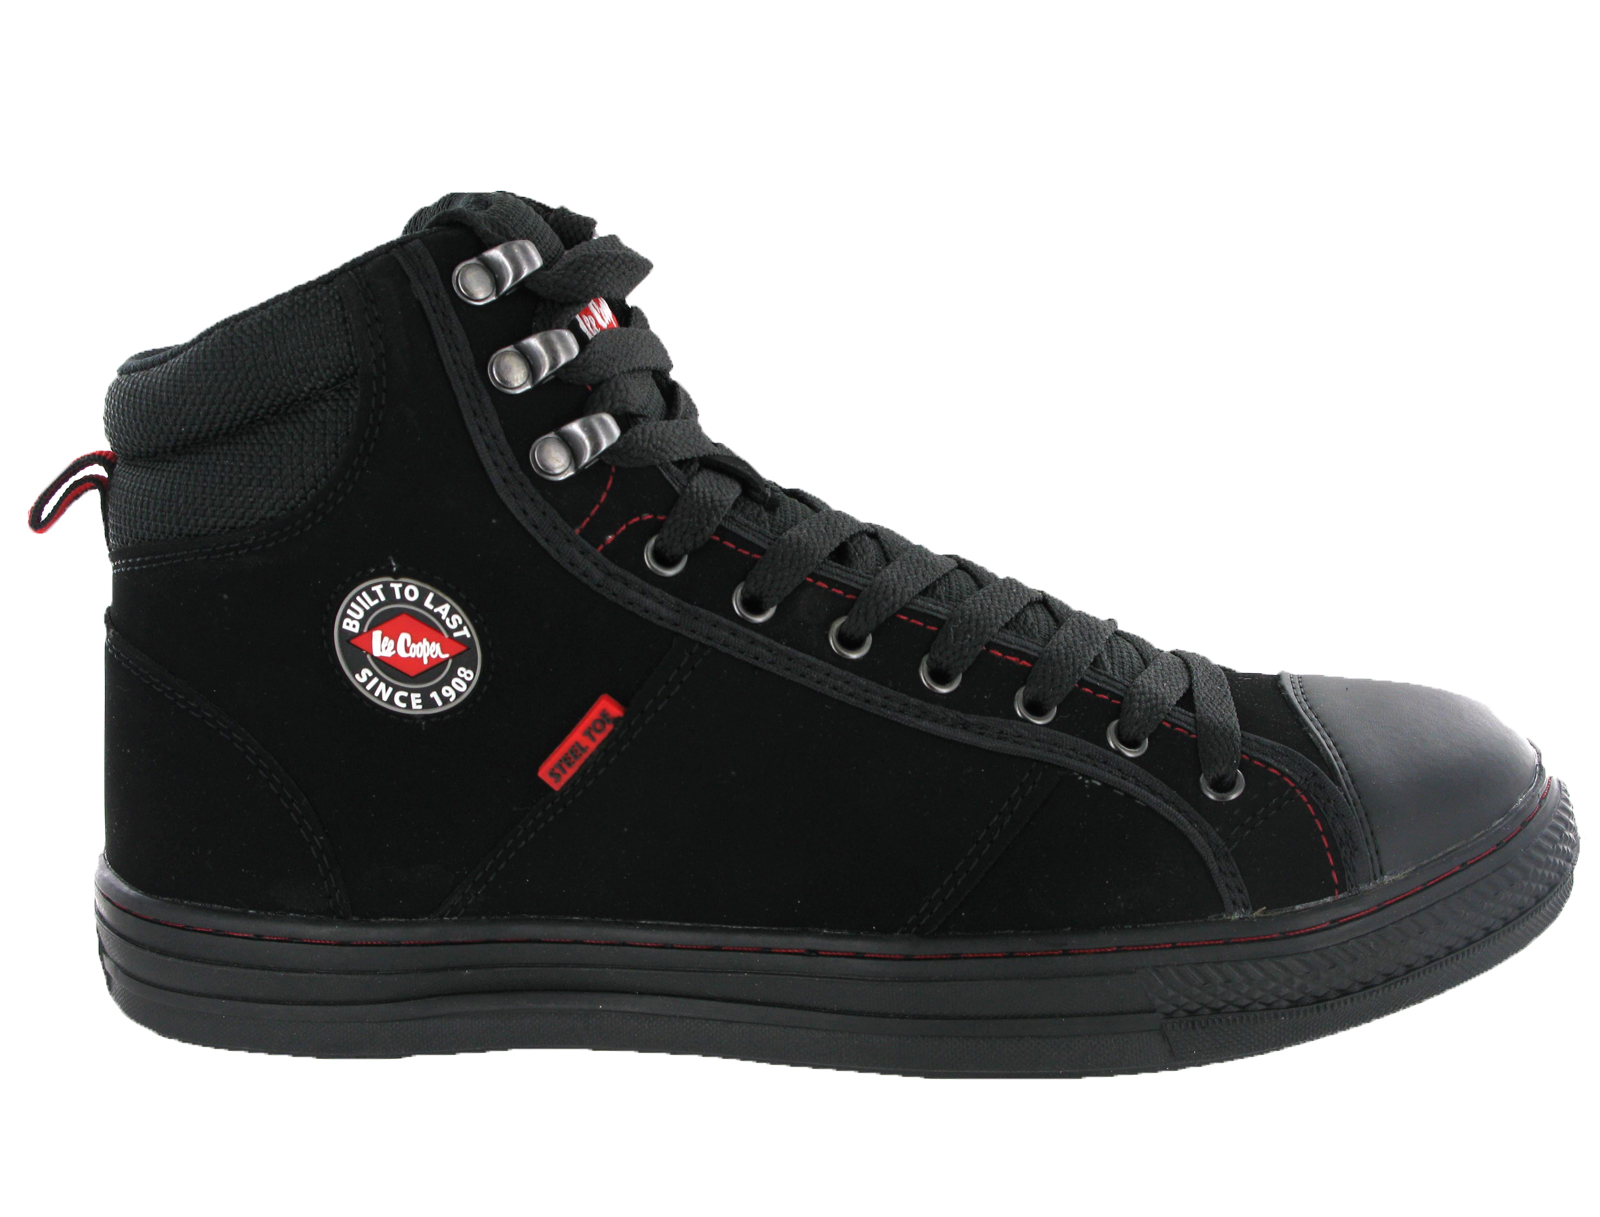 819d97c76bb1 Buy skate steel toe shoes   OFF45% Discounted